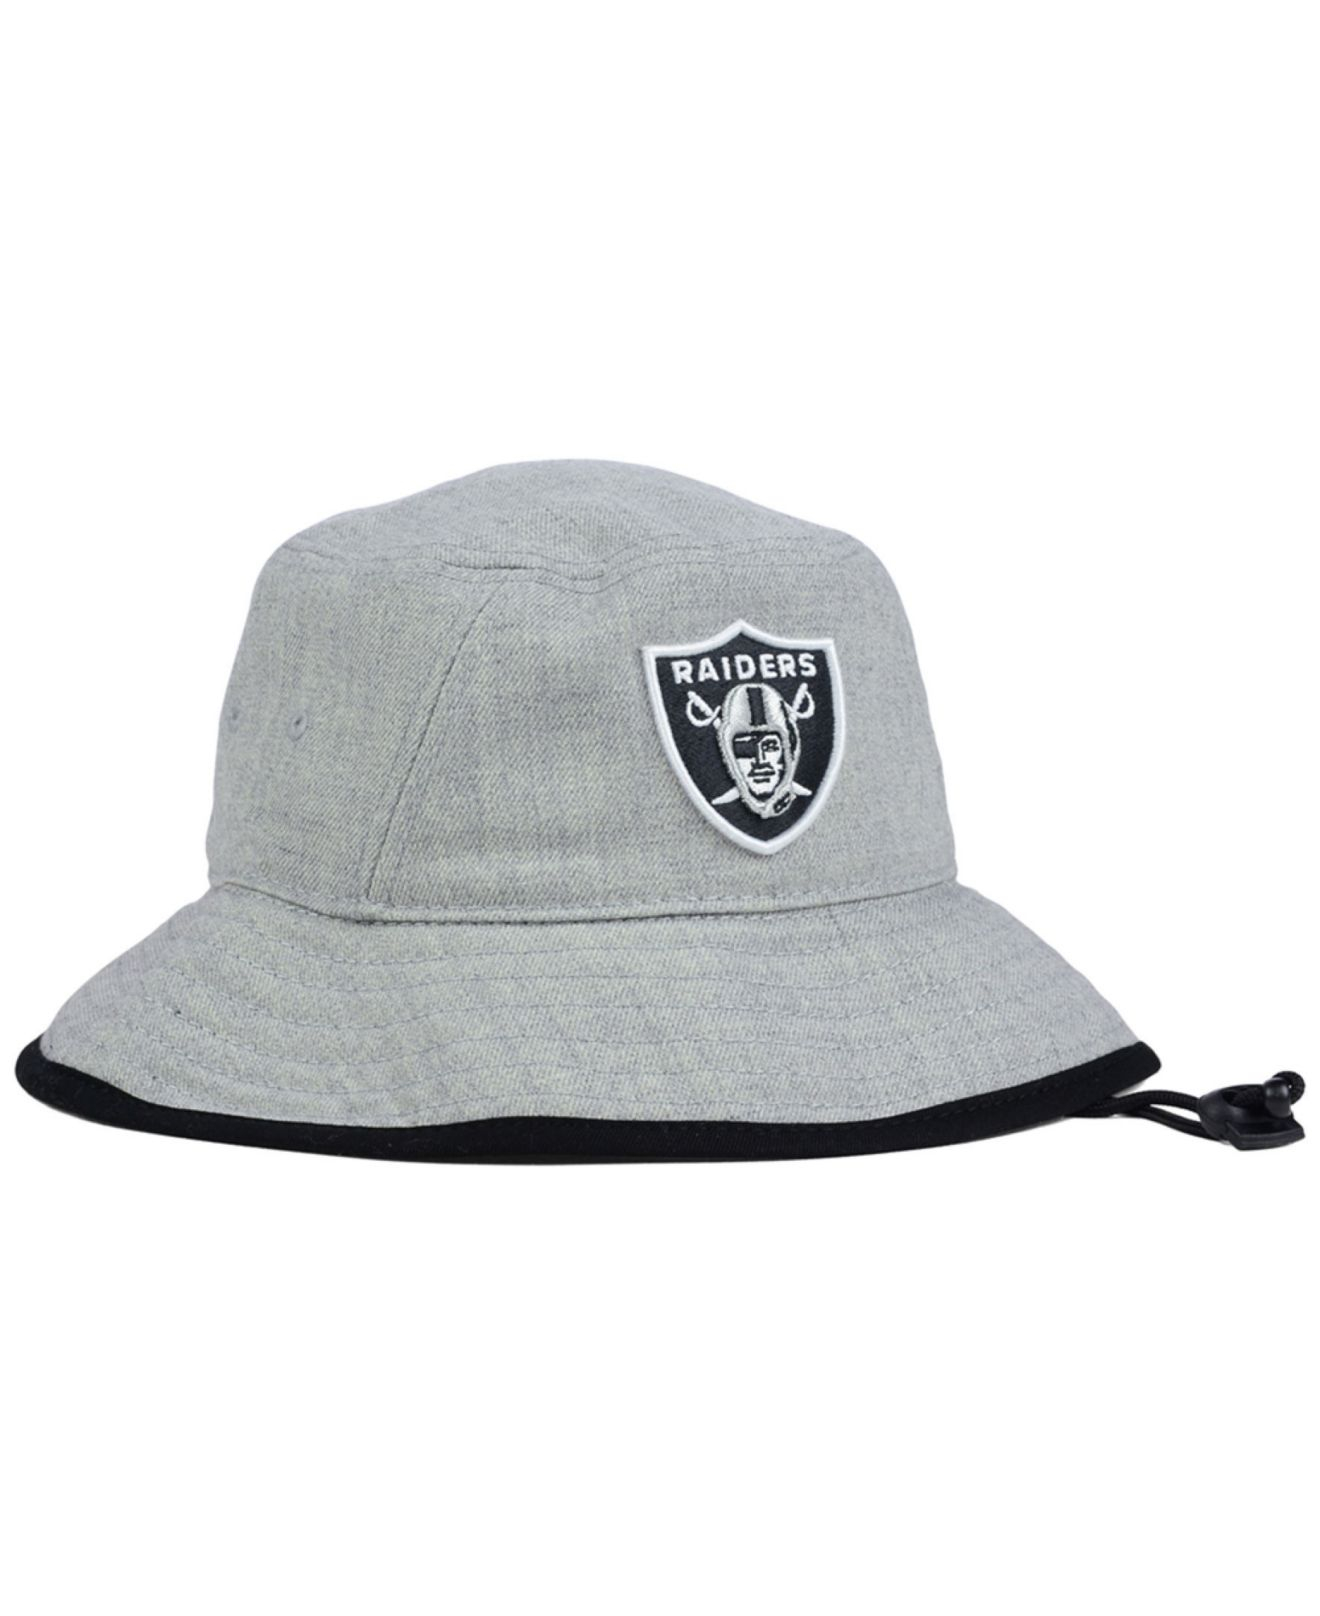 65b8dc57188 ... cheapest lyst ktz oakland raiders nfl heather gray bucket hat in gray  892a0 ce287